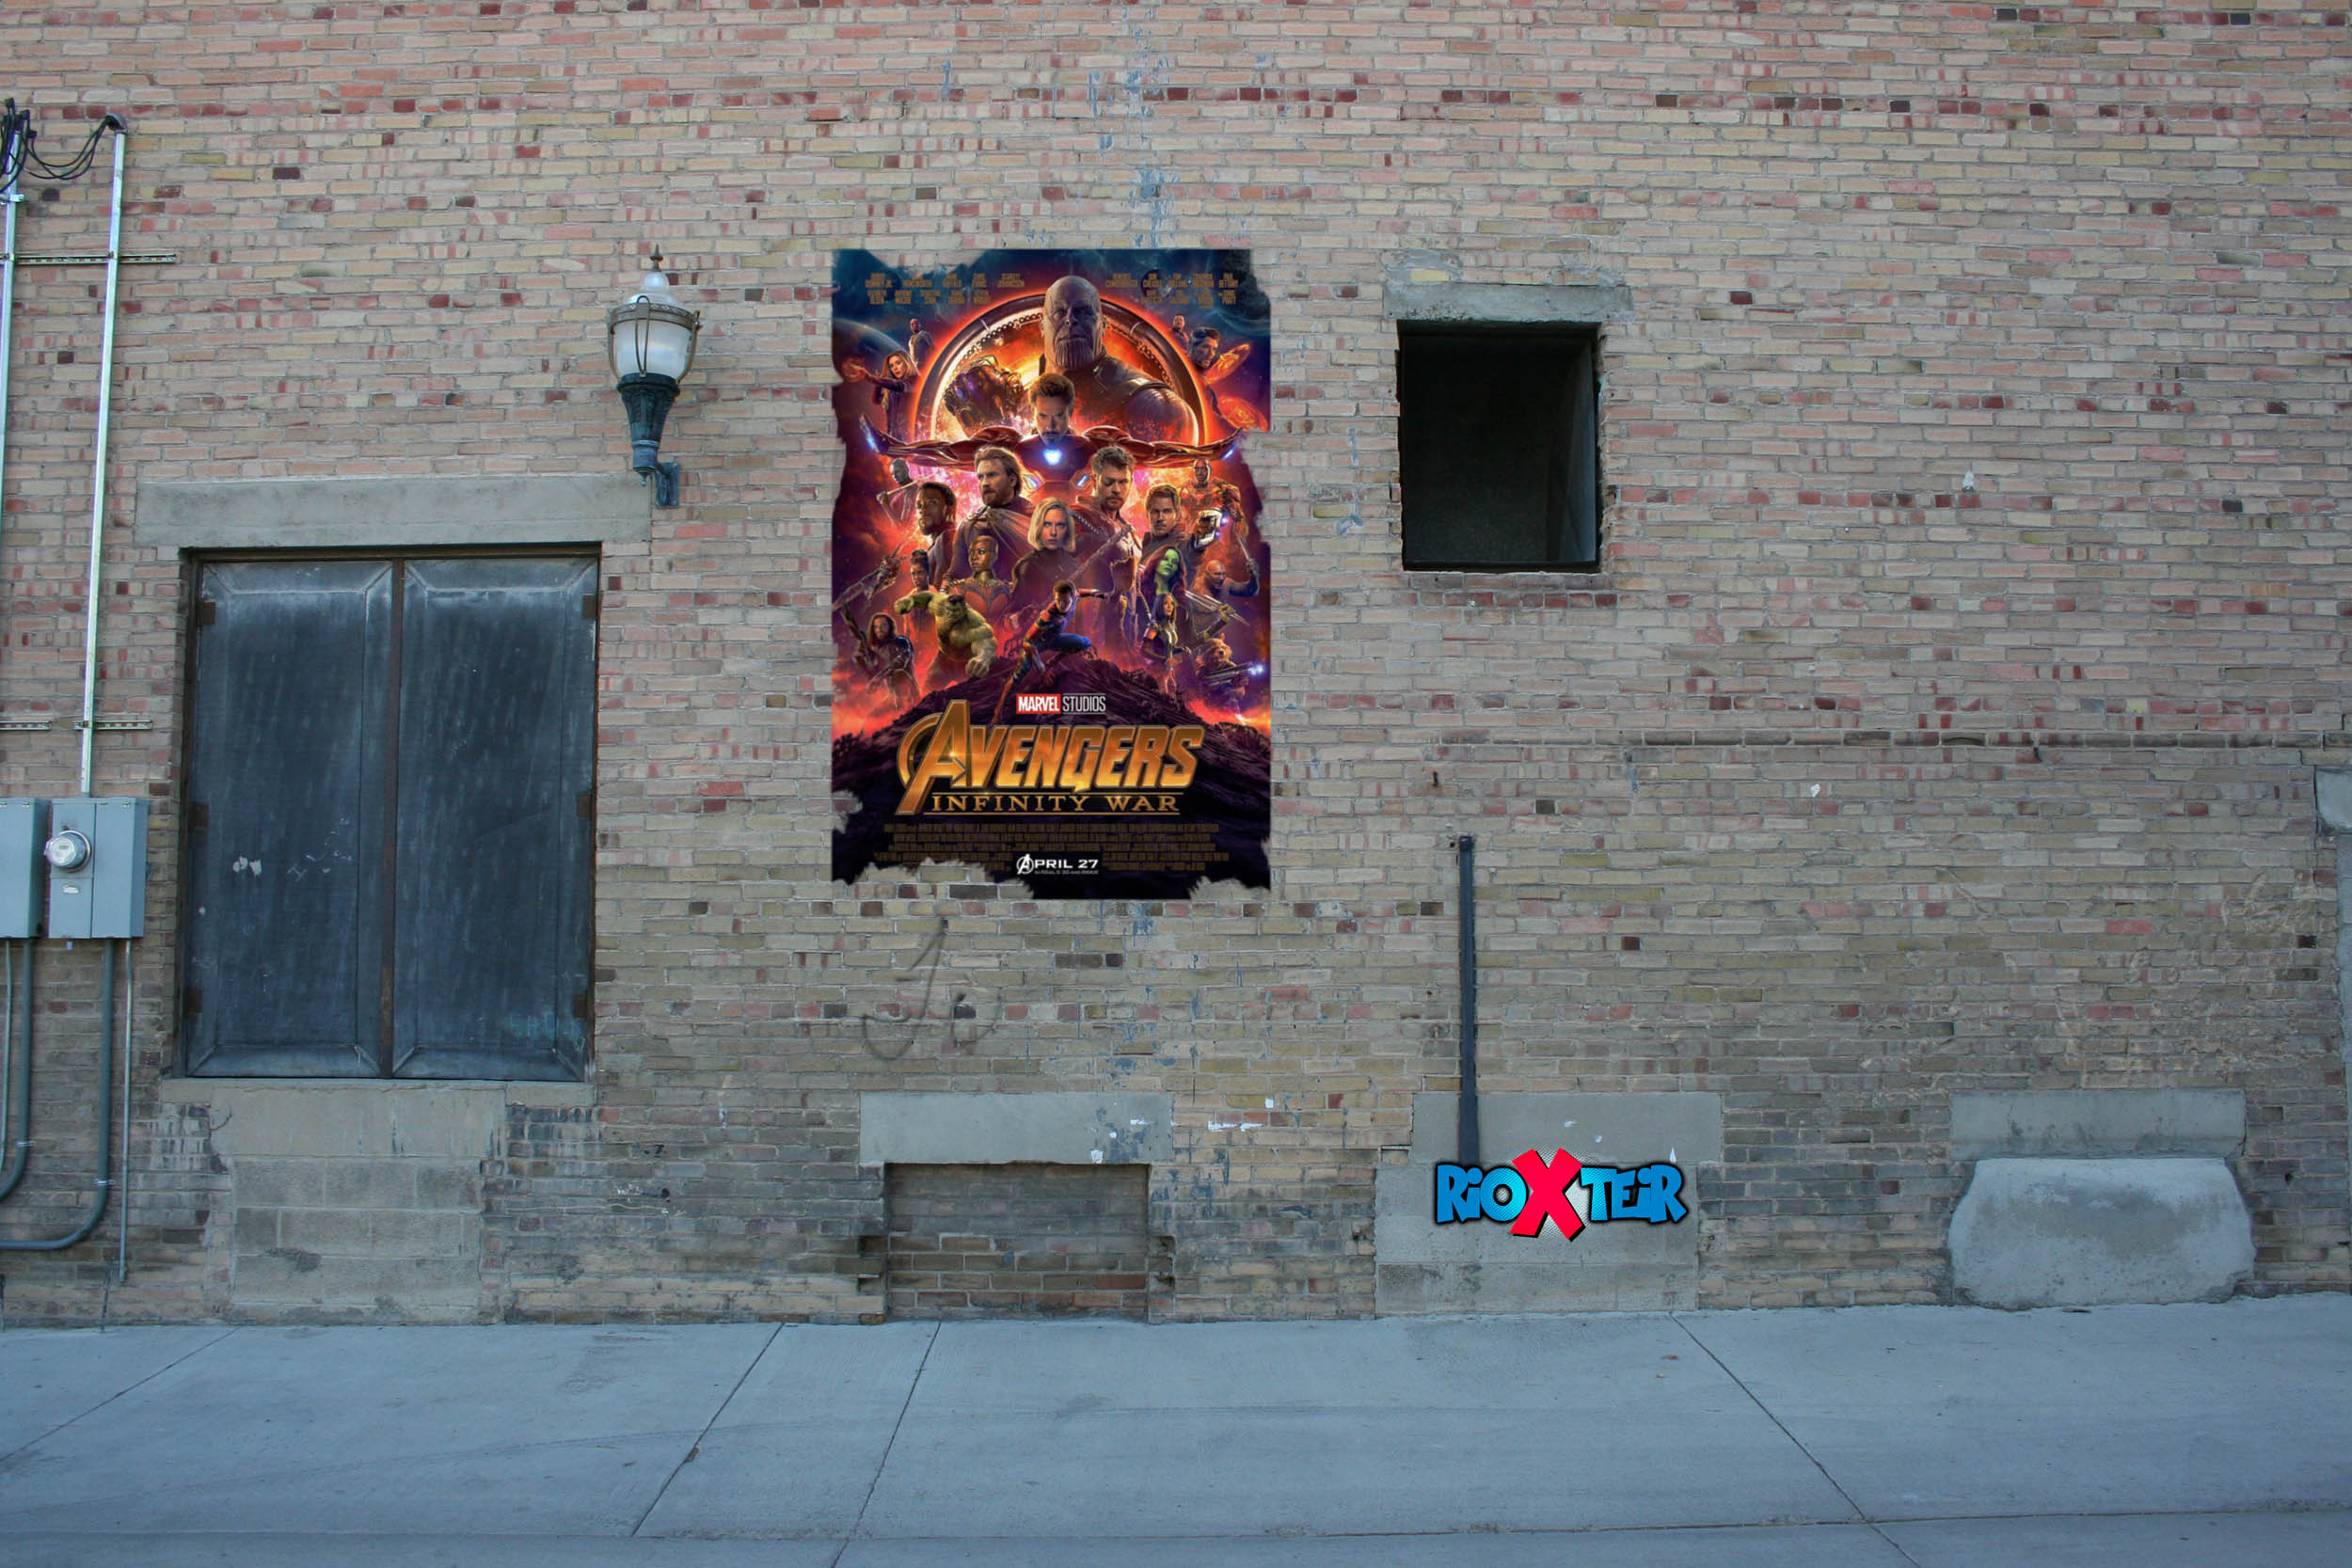 wall building with Avengers poster